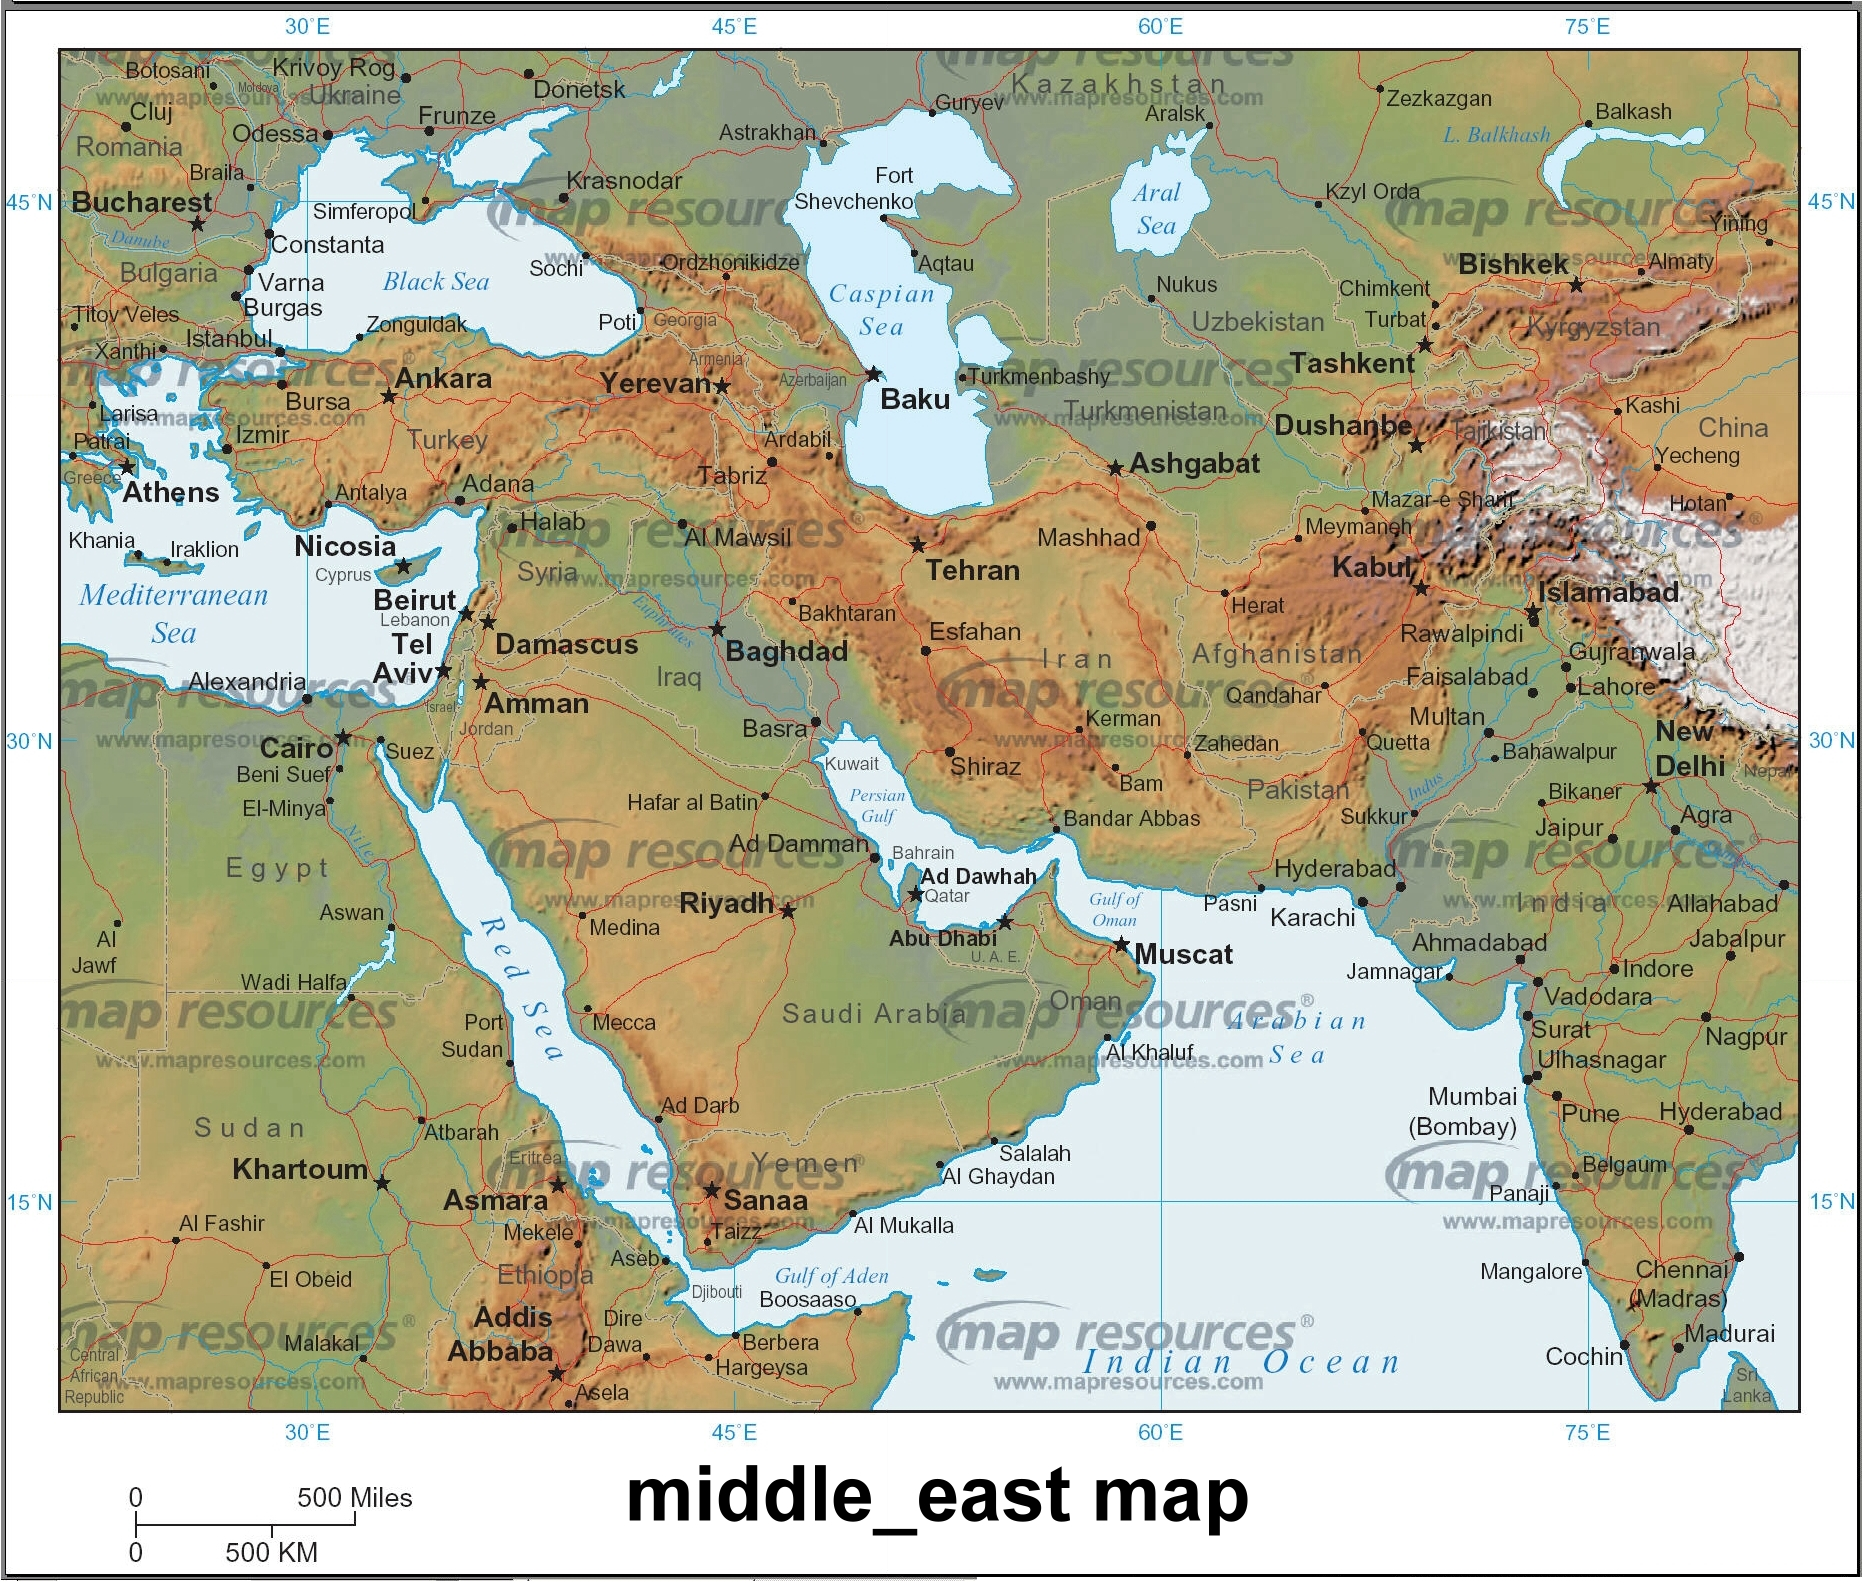 Middle East Map  Middle East  mappery